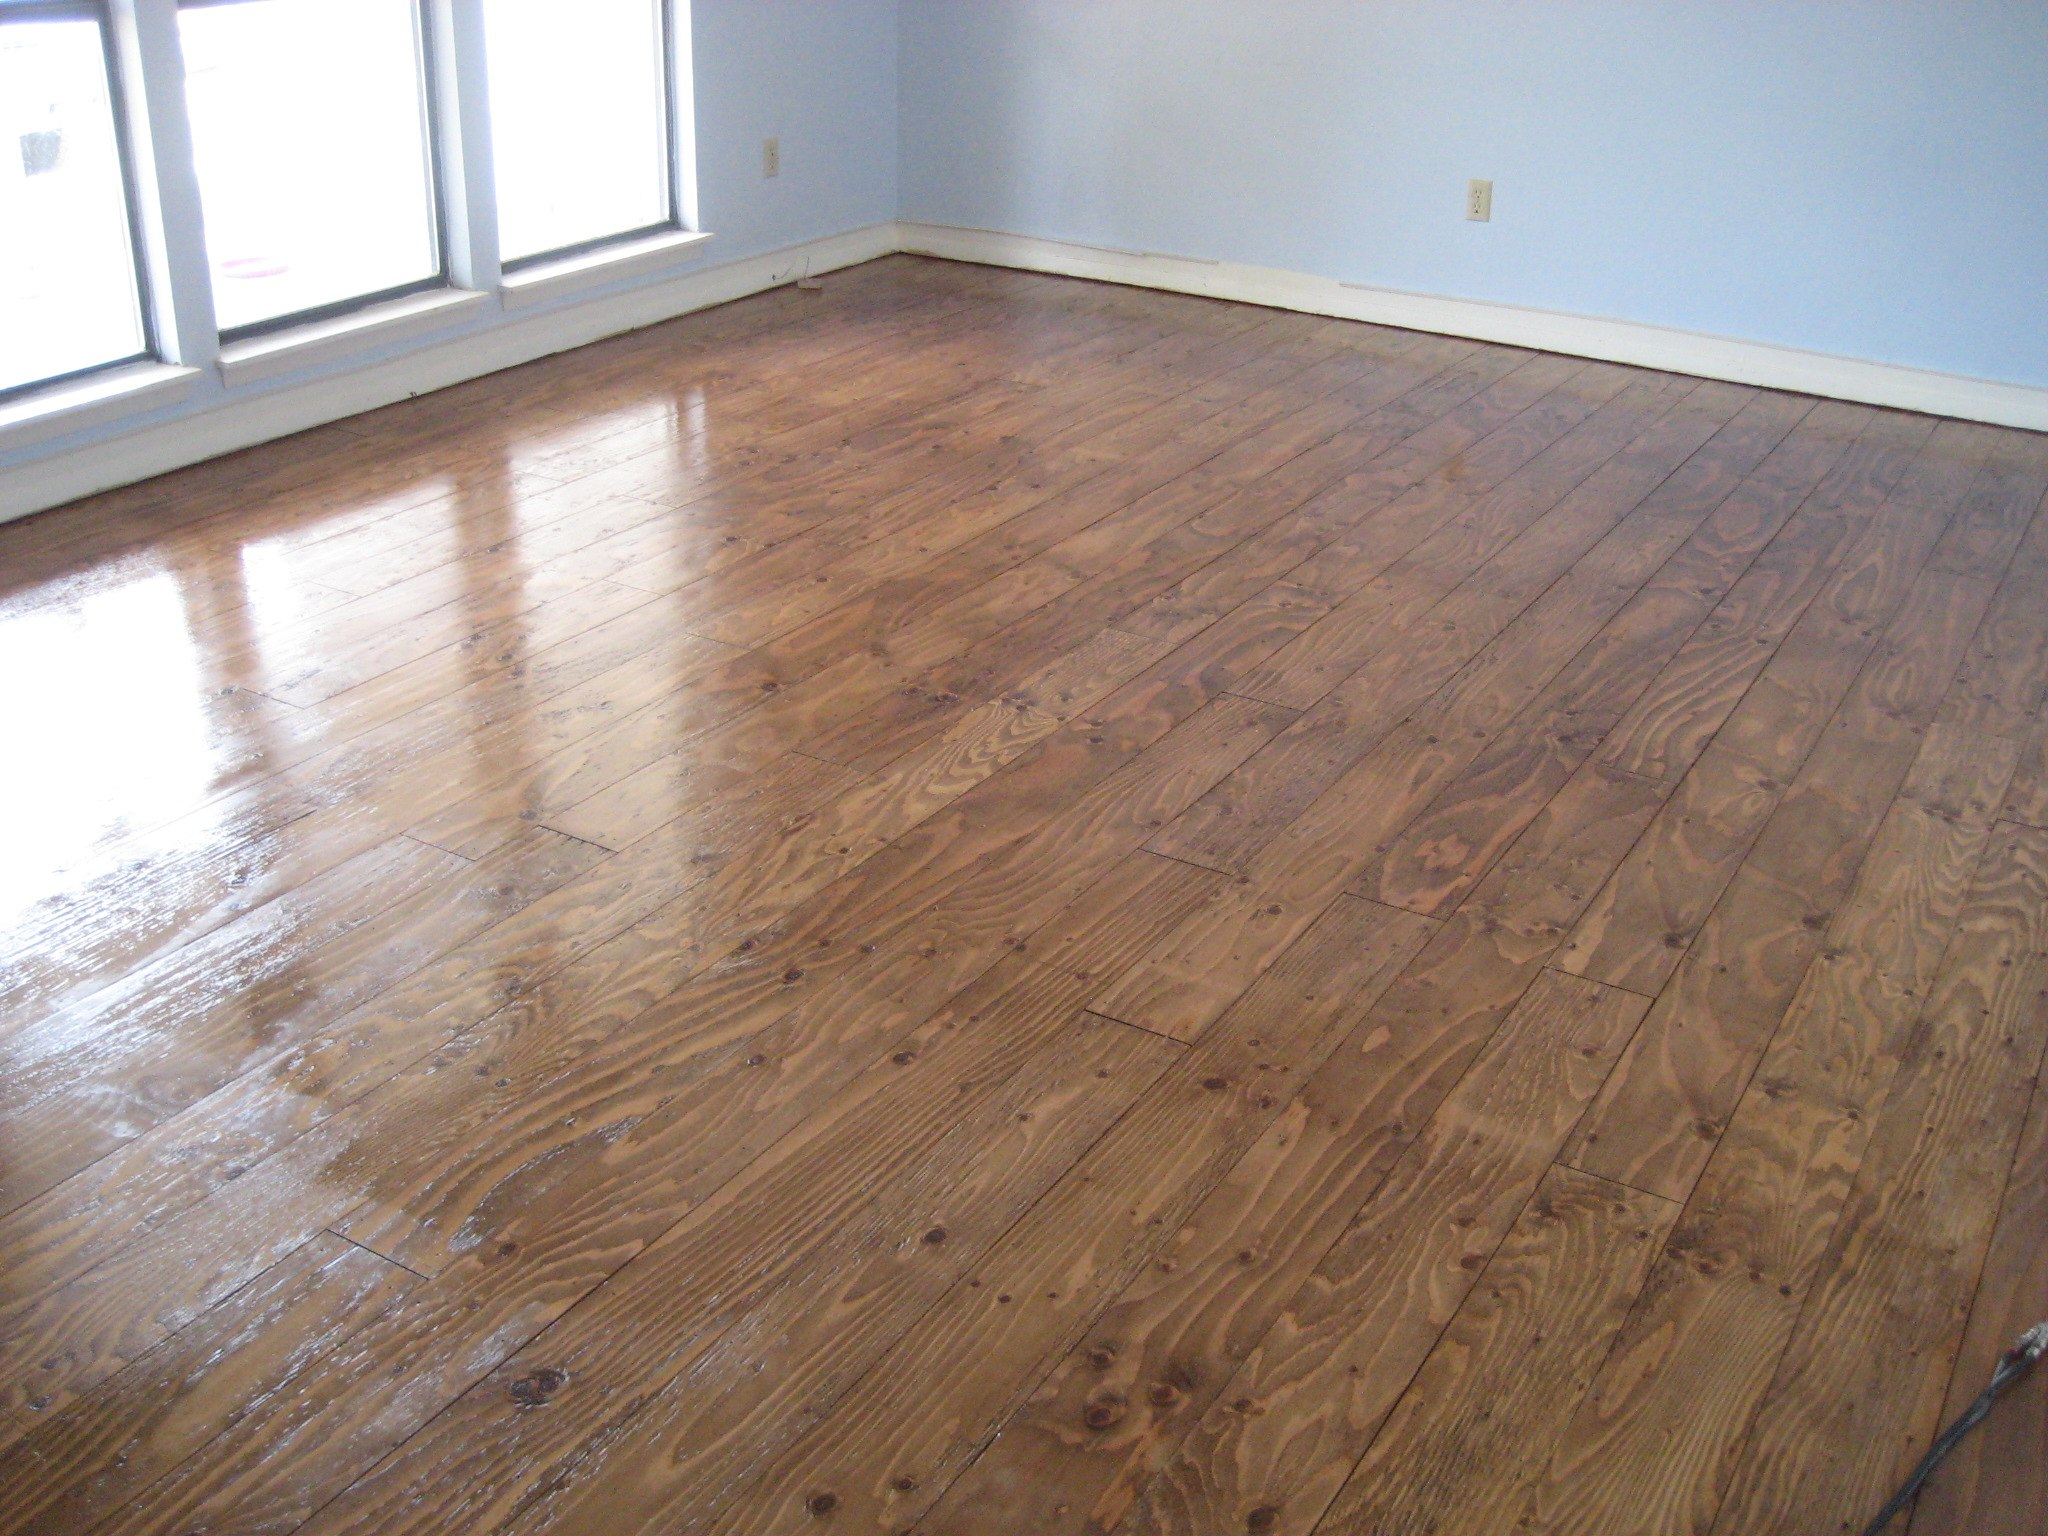 Diy cheap flooring shabby goatshabby goat for Cheap wood flooring ideas